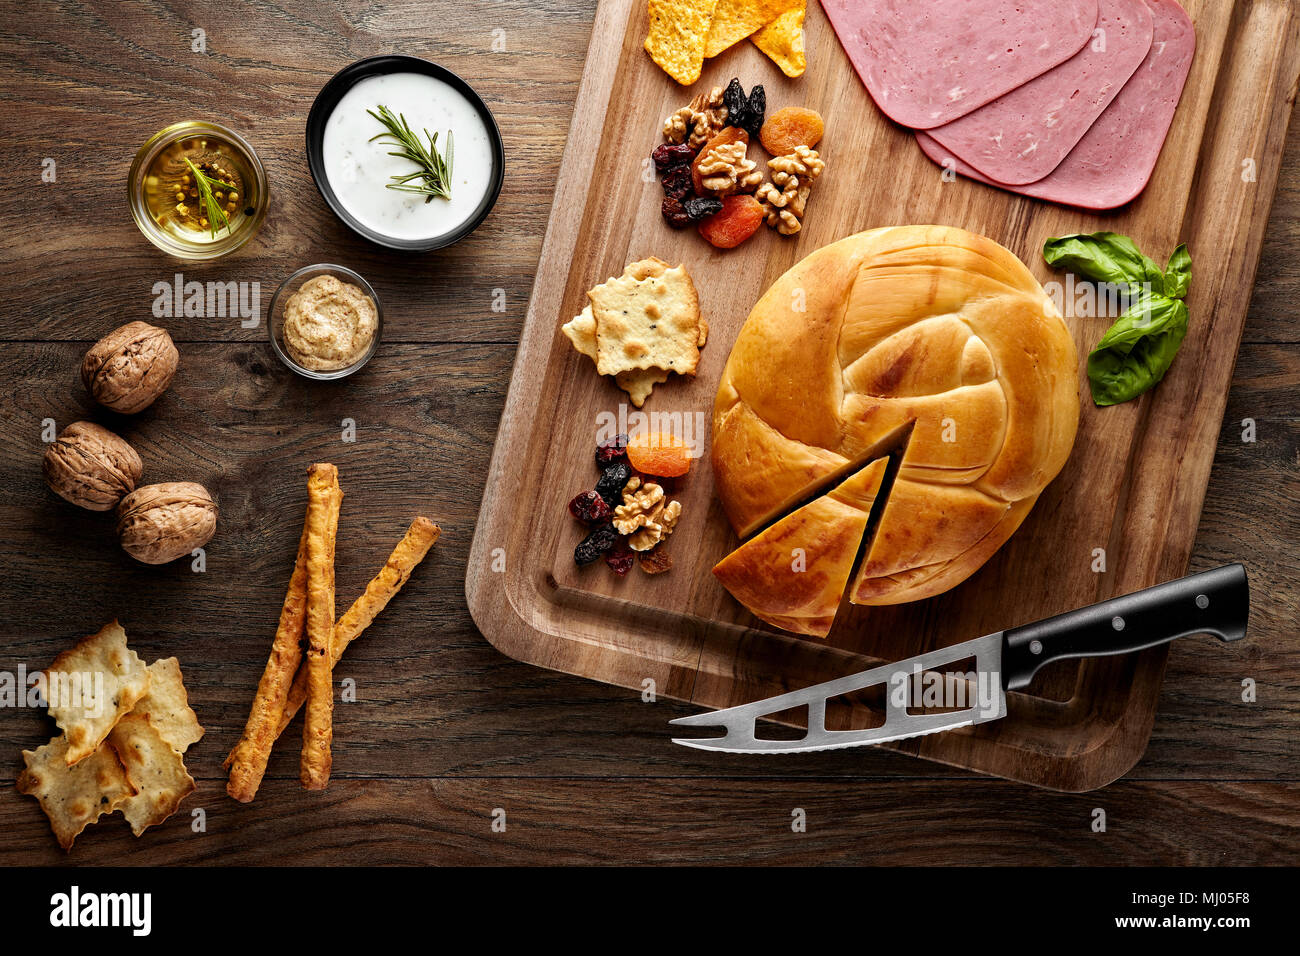 Turkish smoked cheese on a wooden table decorated with props of wooden cutting board, cheese knife, walnuts, dried fruits, ham and olive oil - Stock Image